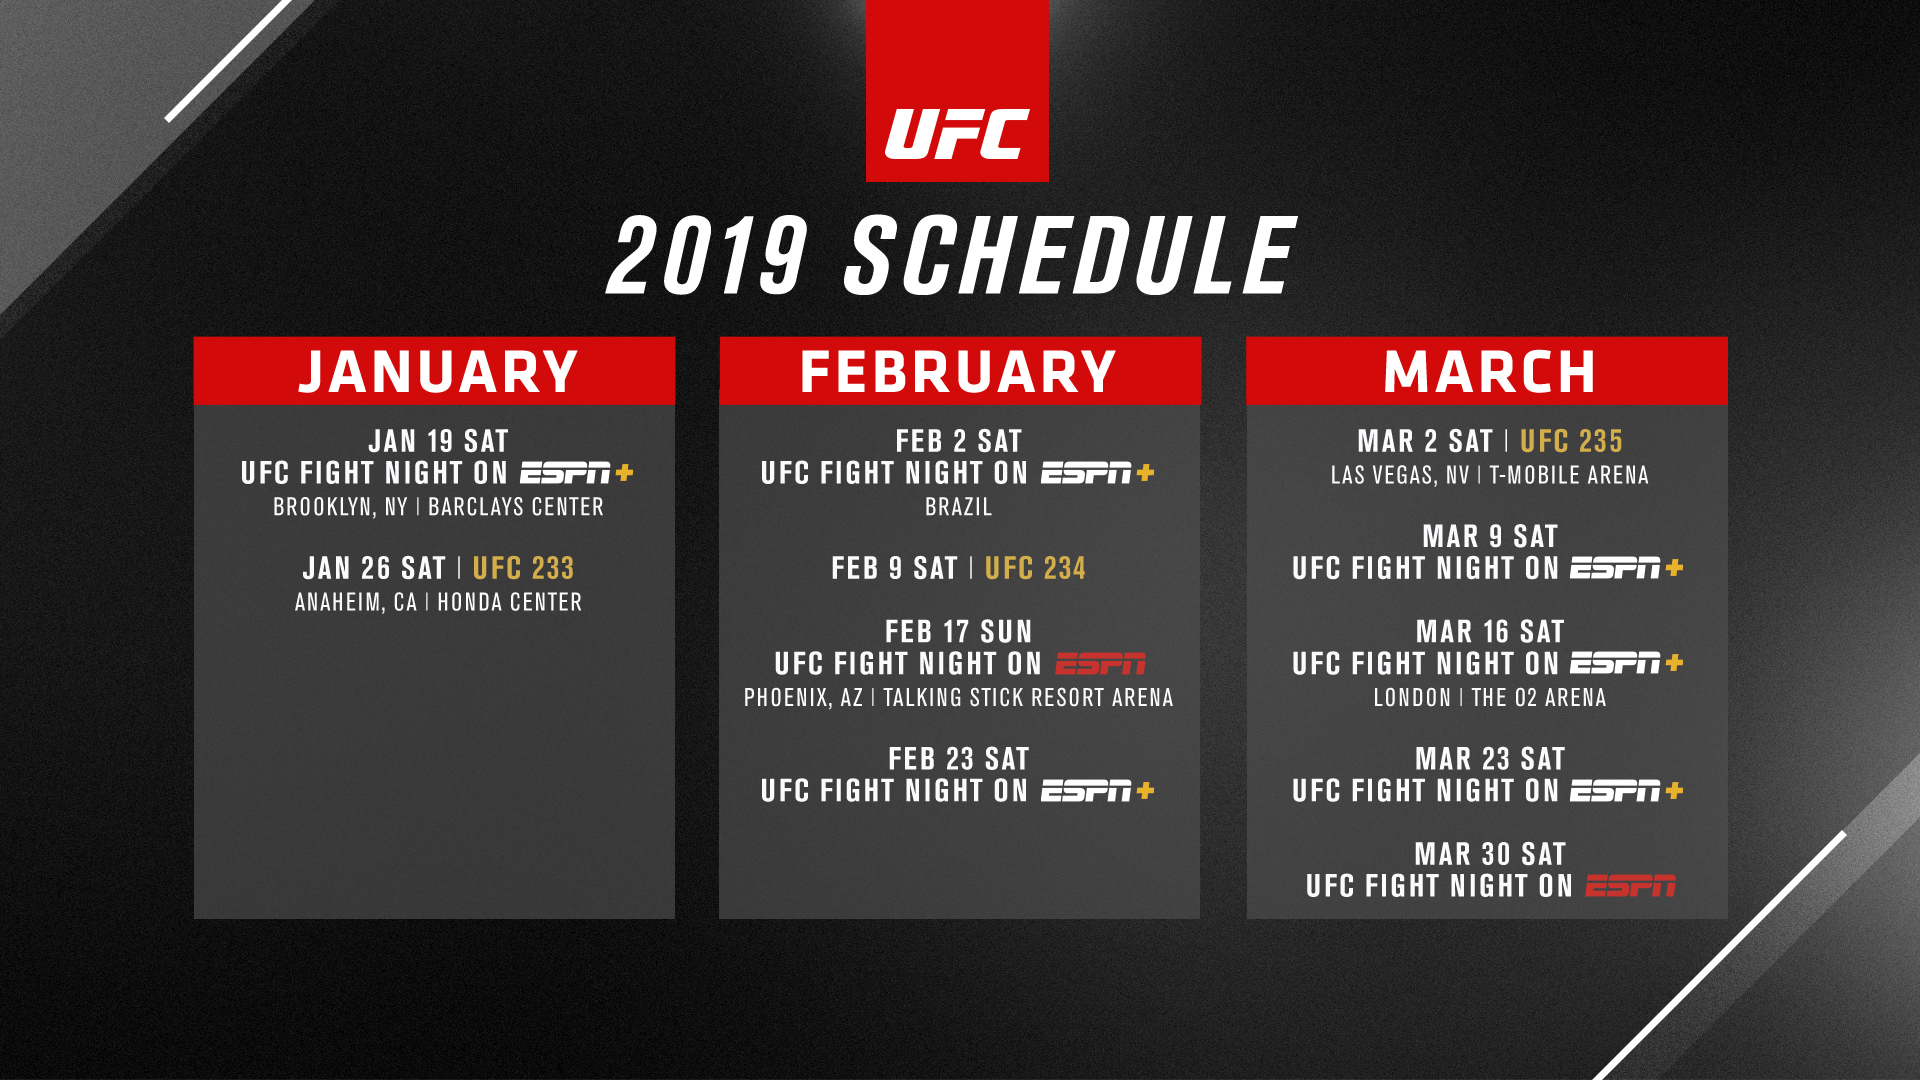 UFC Announces First Quarter Schedule for 2019 | UFC